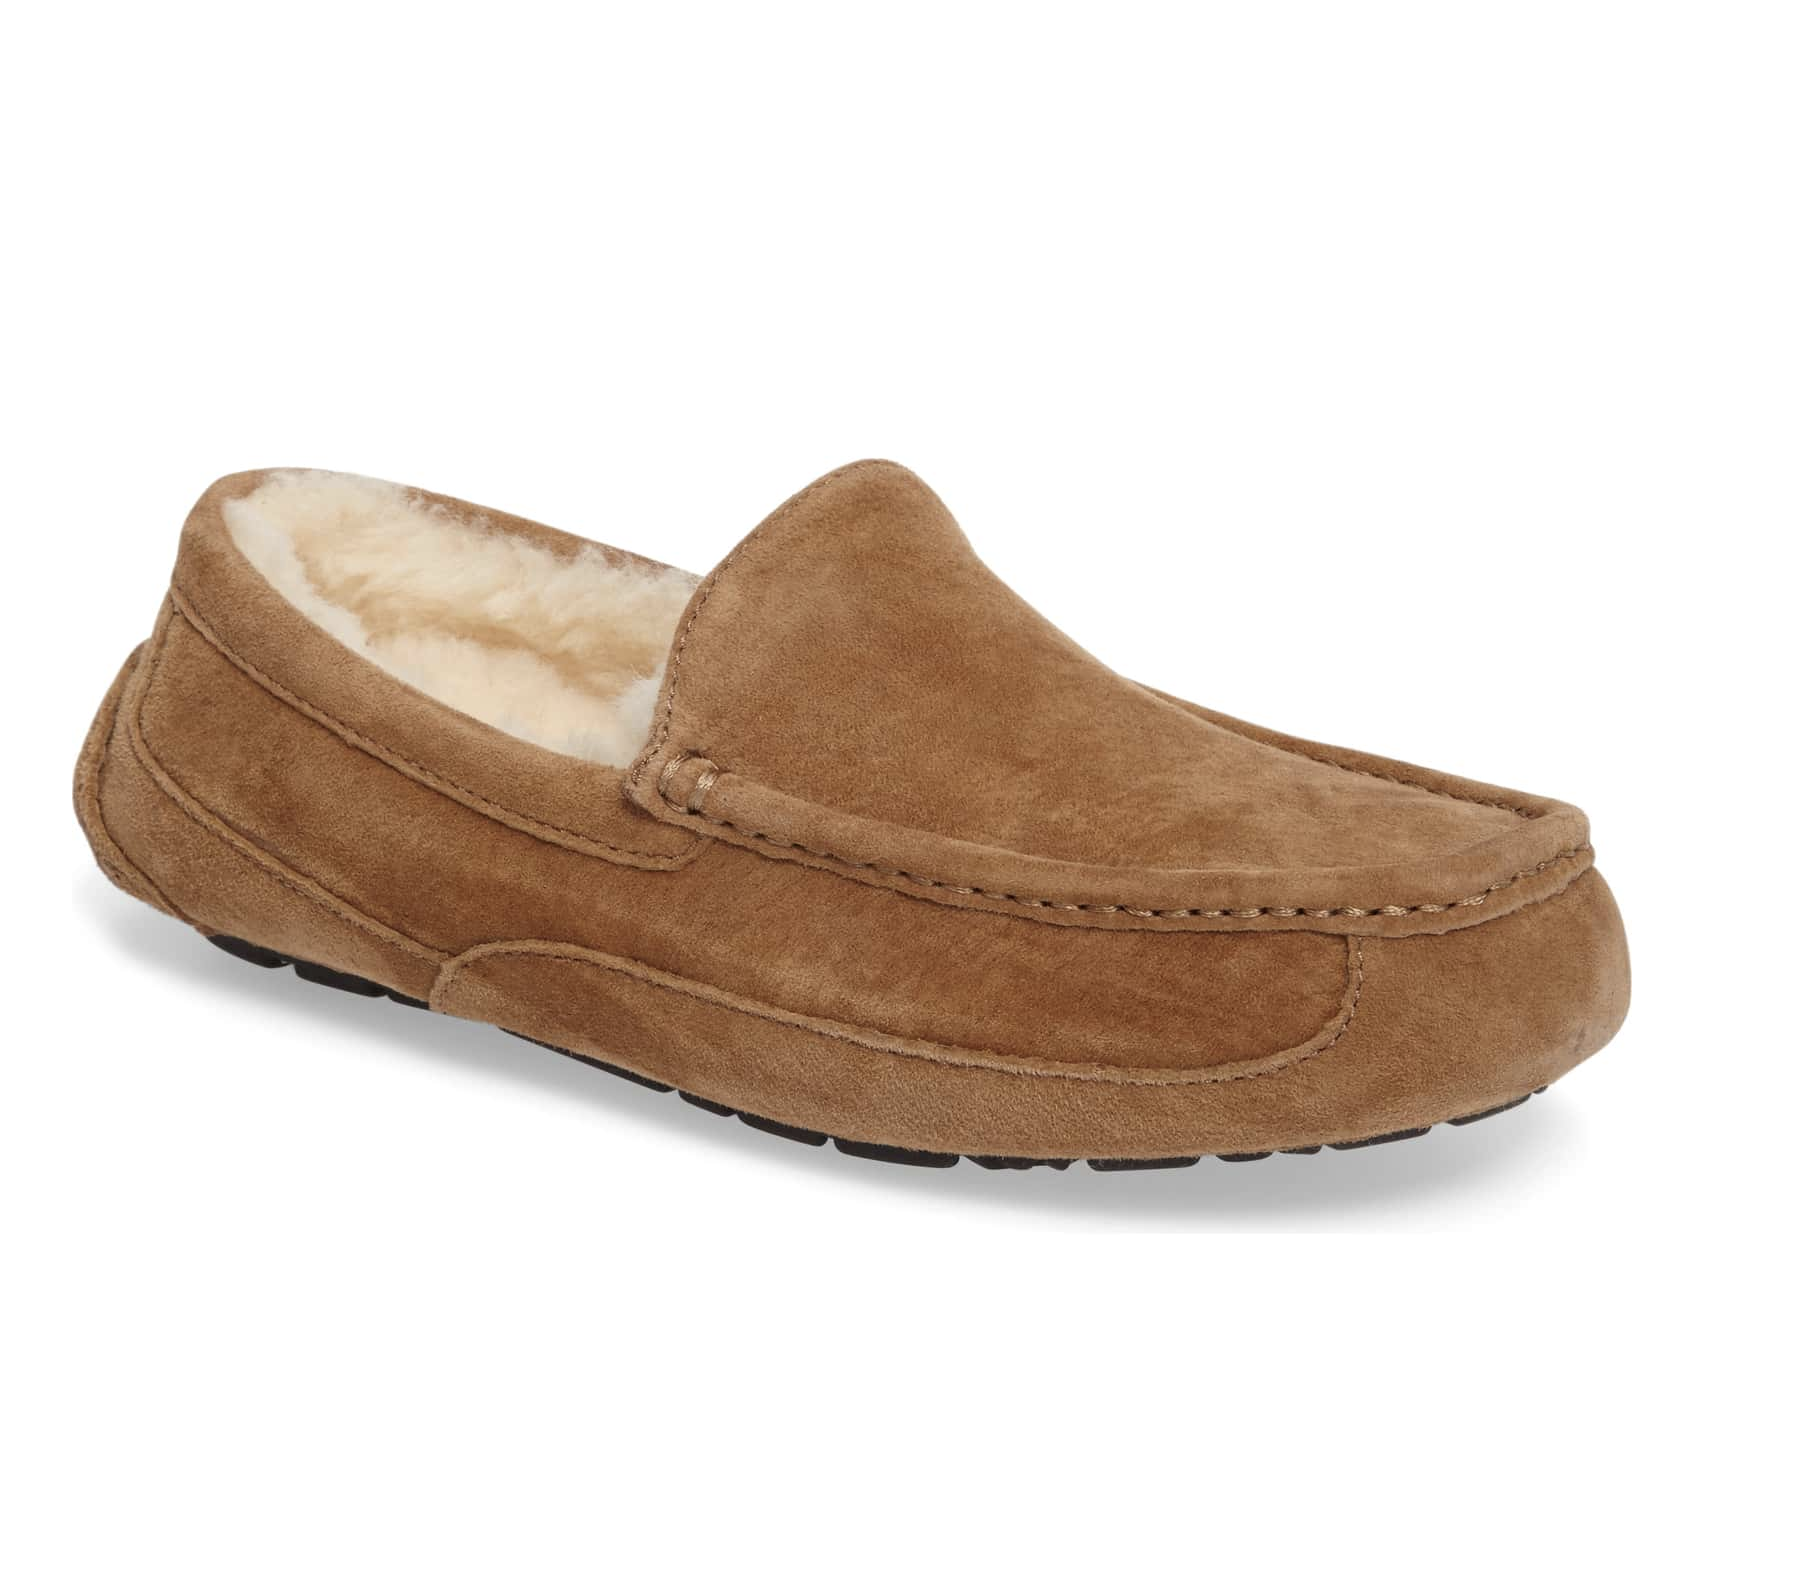 SLIPPERS - Give him the gift of comfort. These Uggs in Chestnut are a classic for $110.